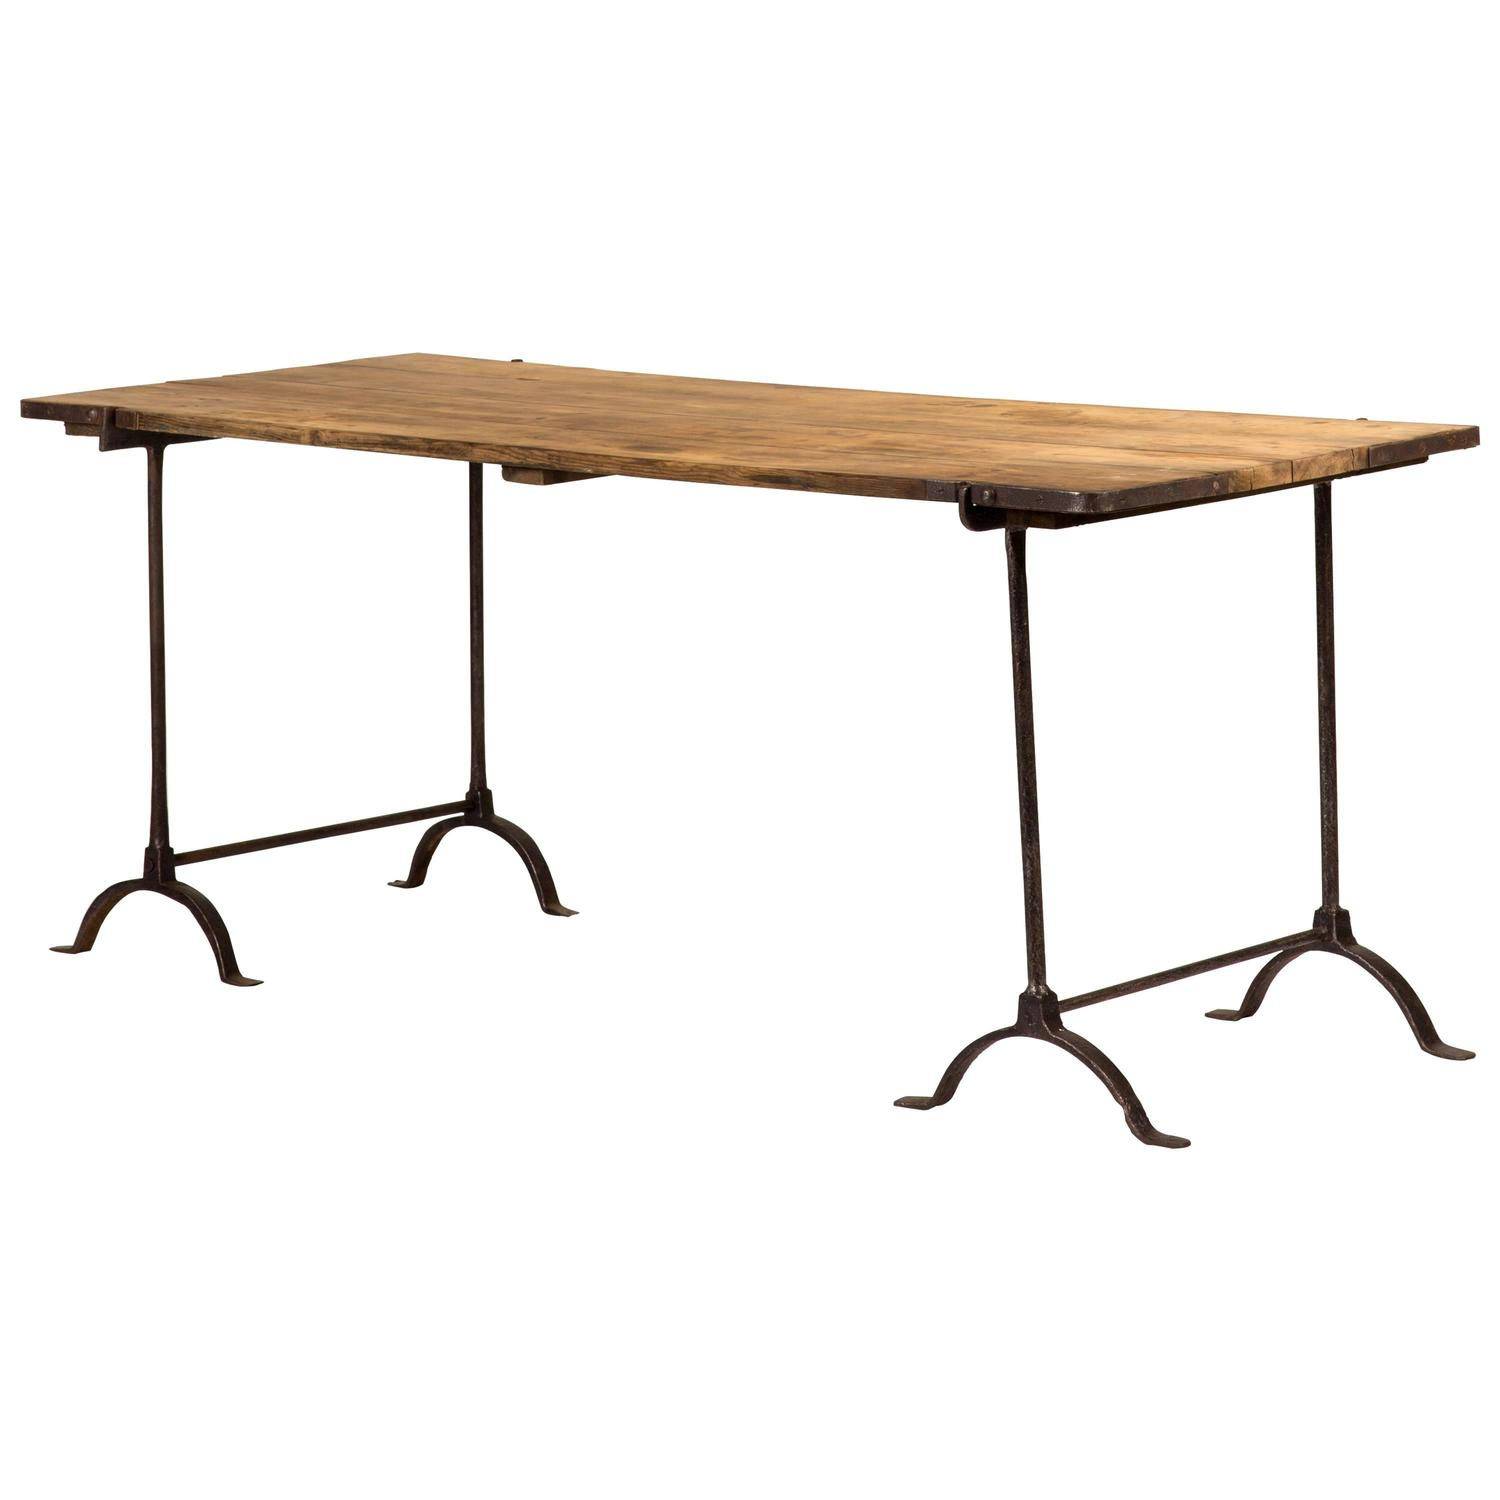 Oakwood Topped Trestle Table with Iron Legs For Sale at 1stdibs